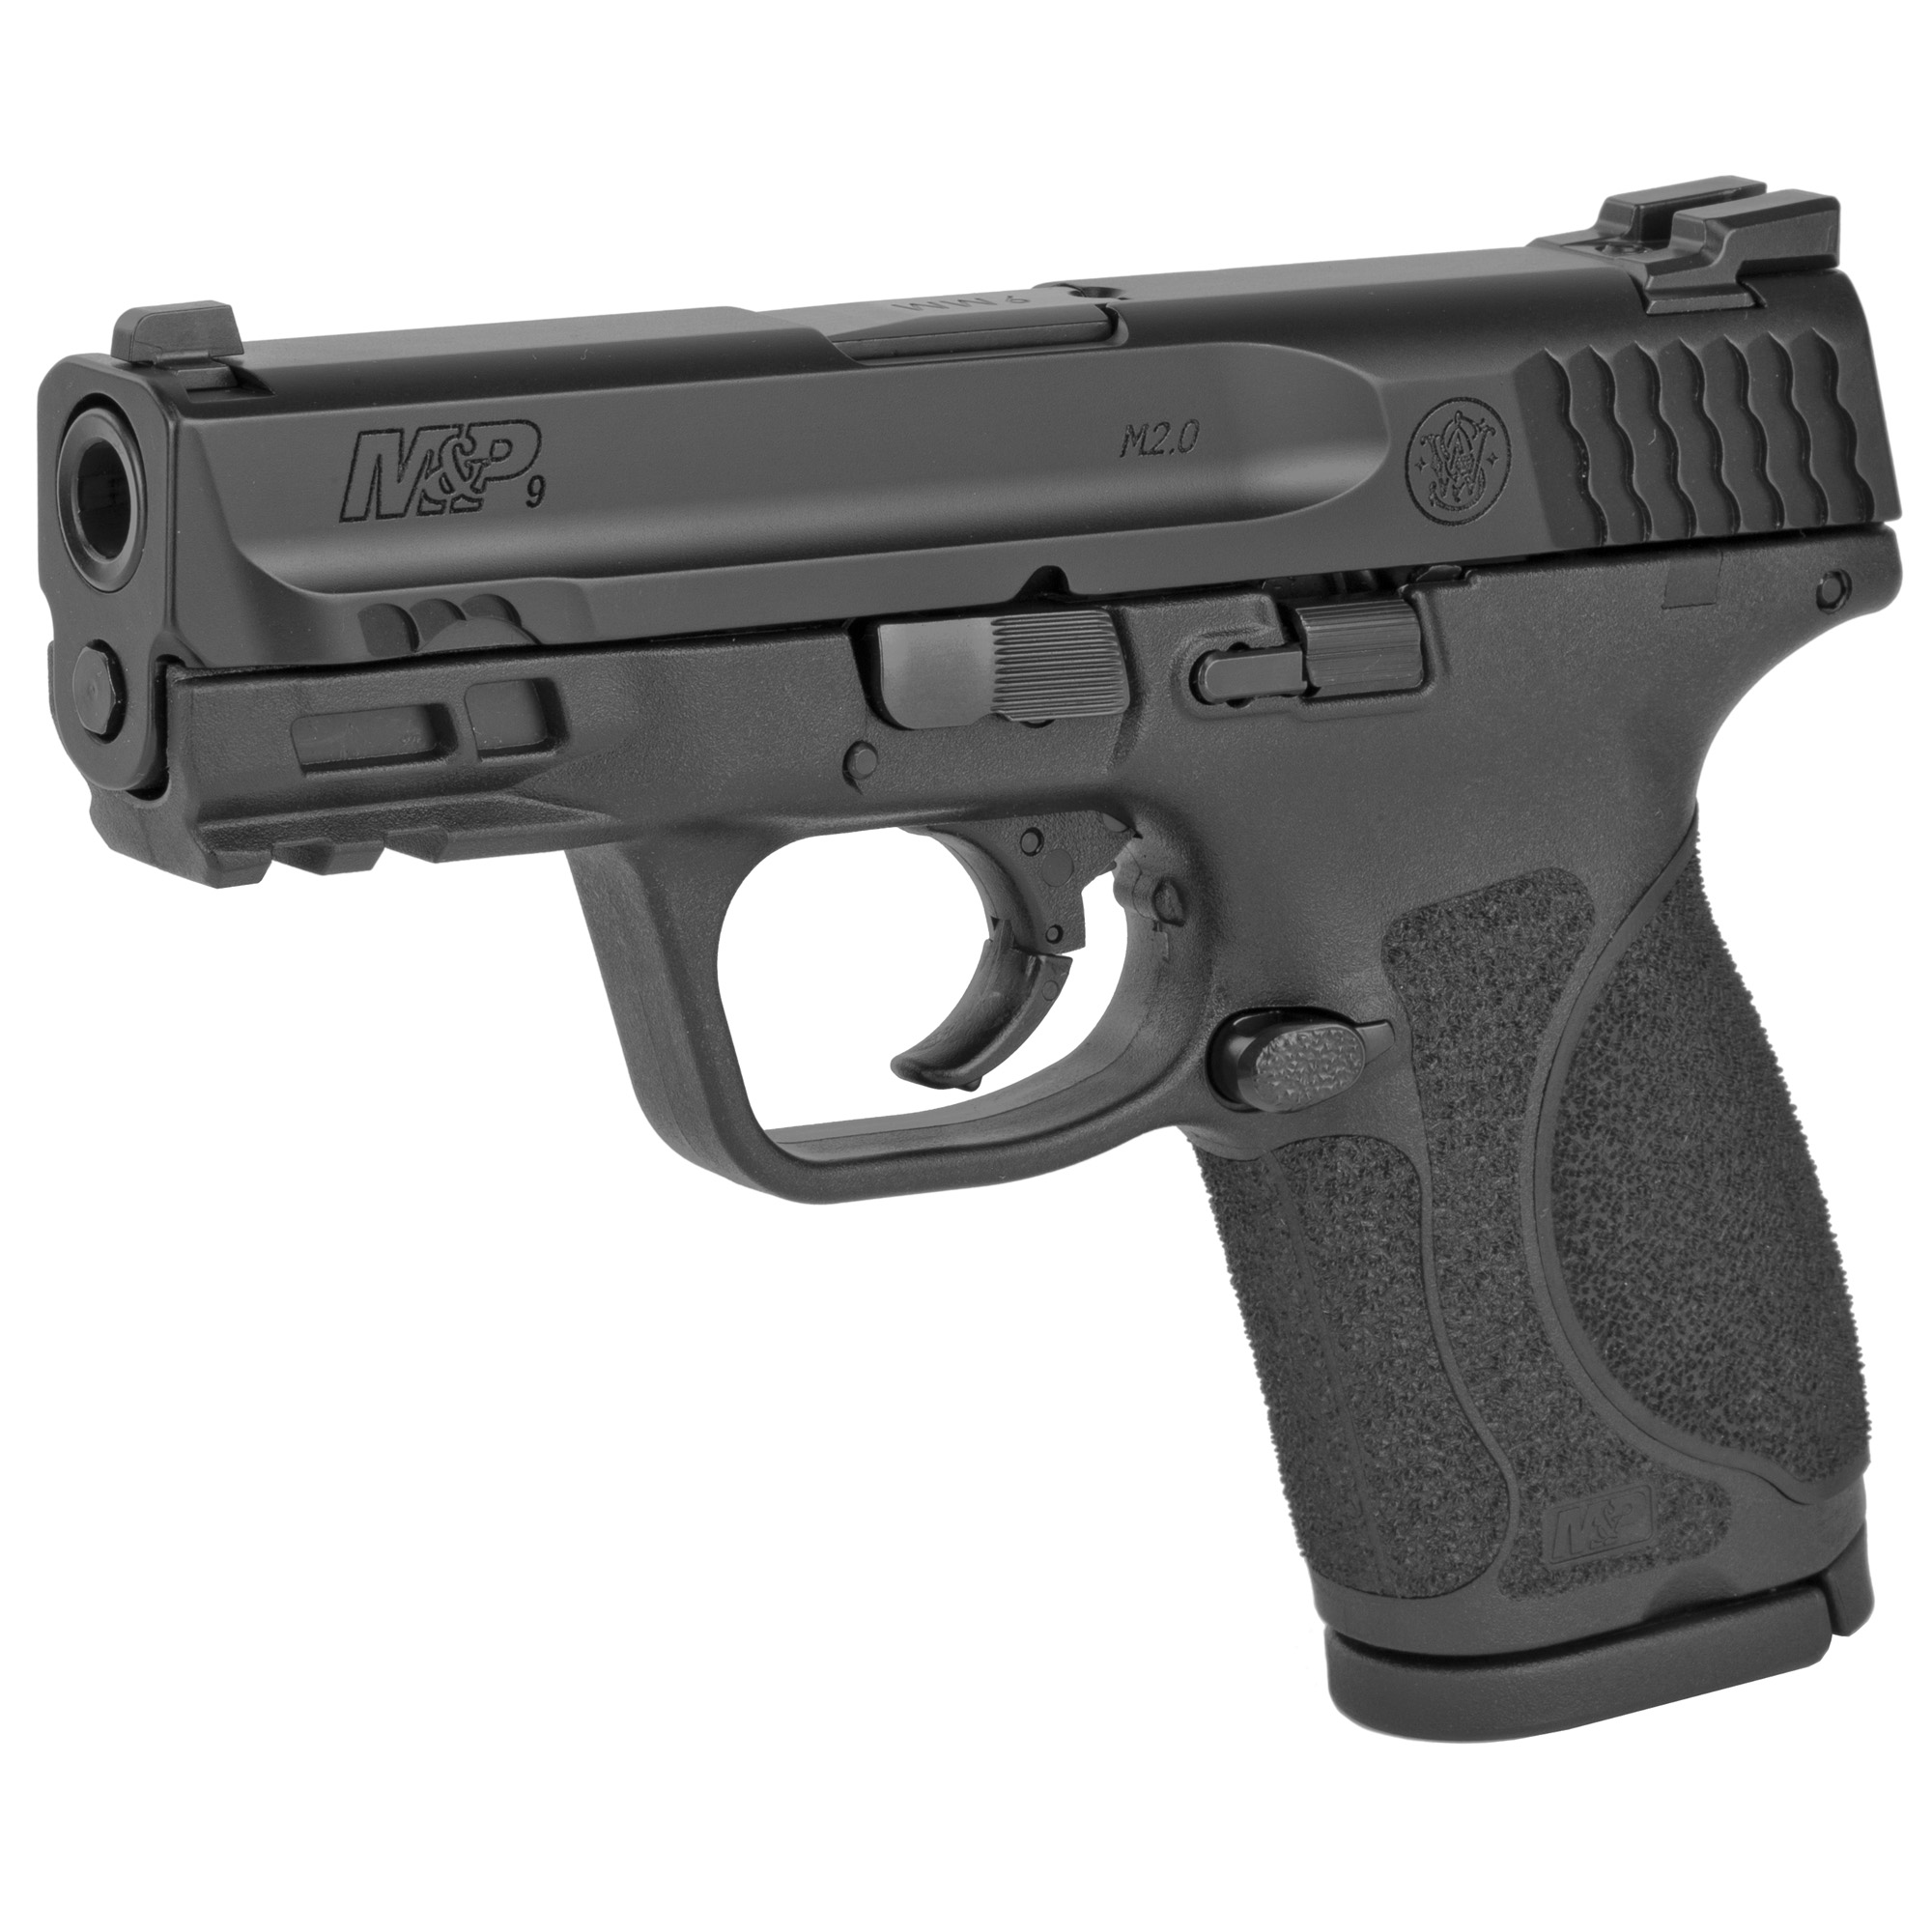 """Smith & Wesson M&P 2.0 Striker Fired 3.6"""" 9mm 15rd Fixed Sights - Black-img-2"""